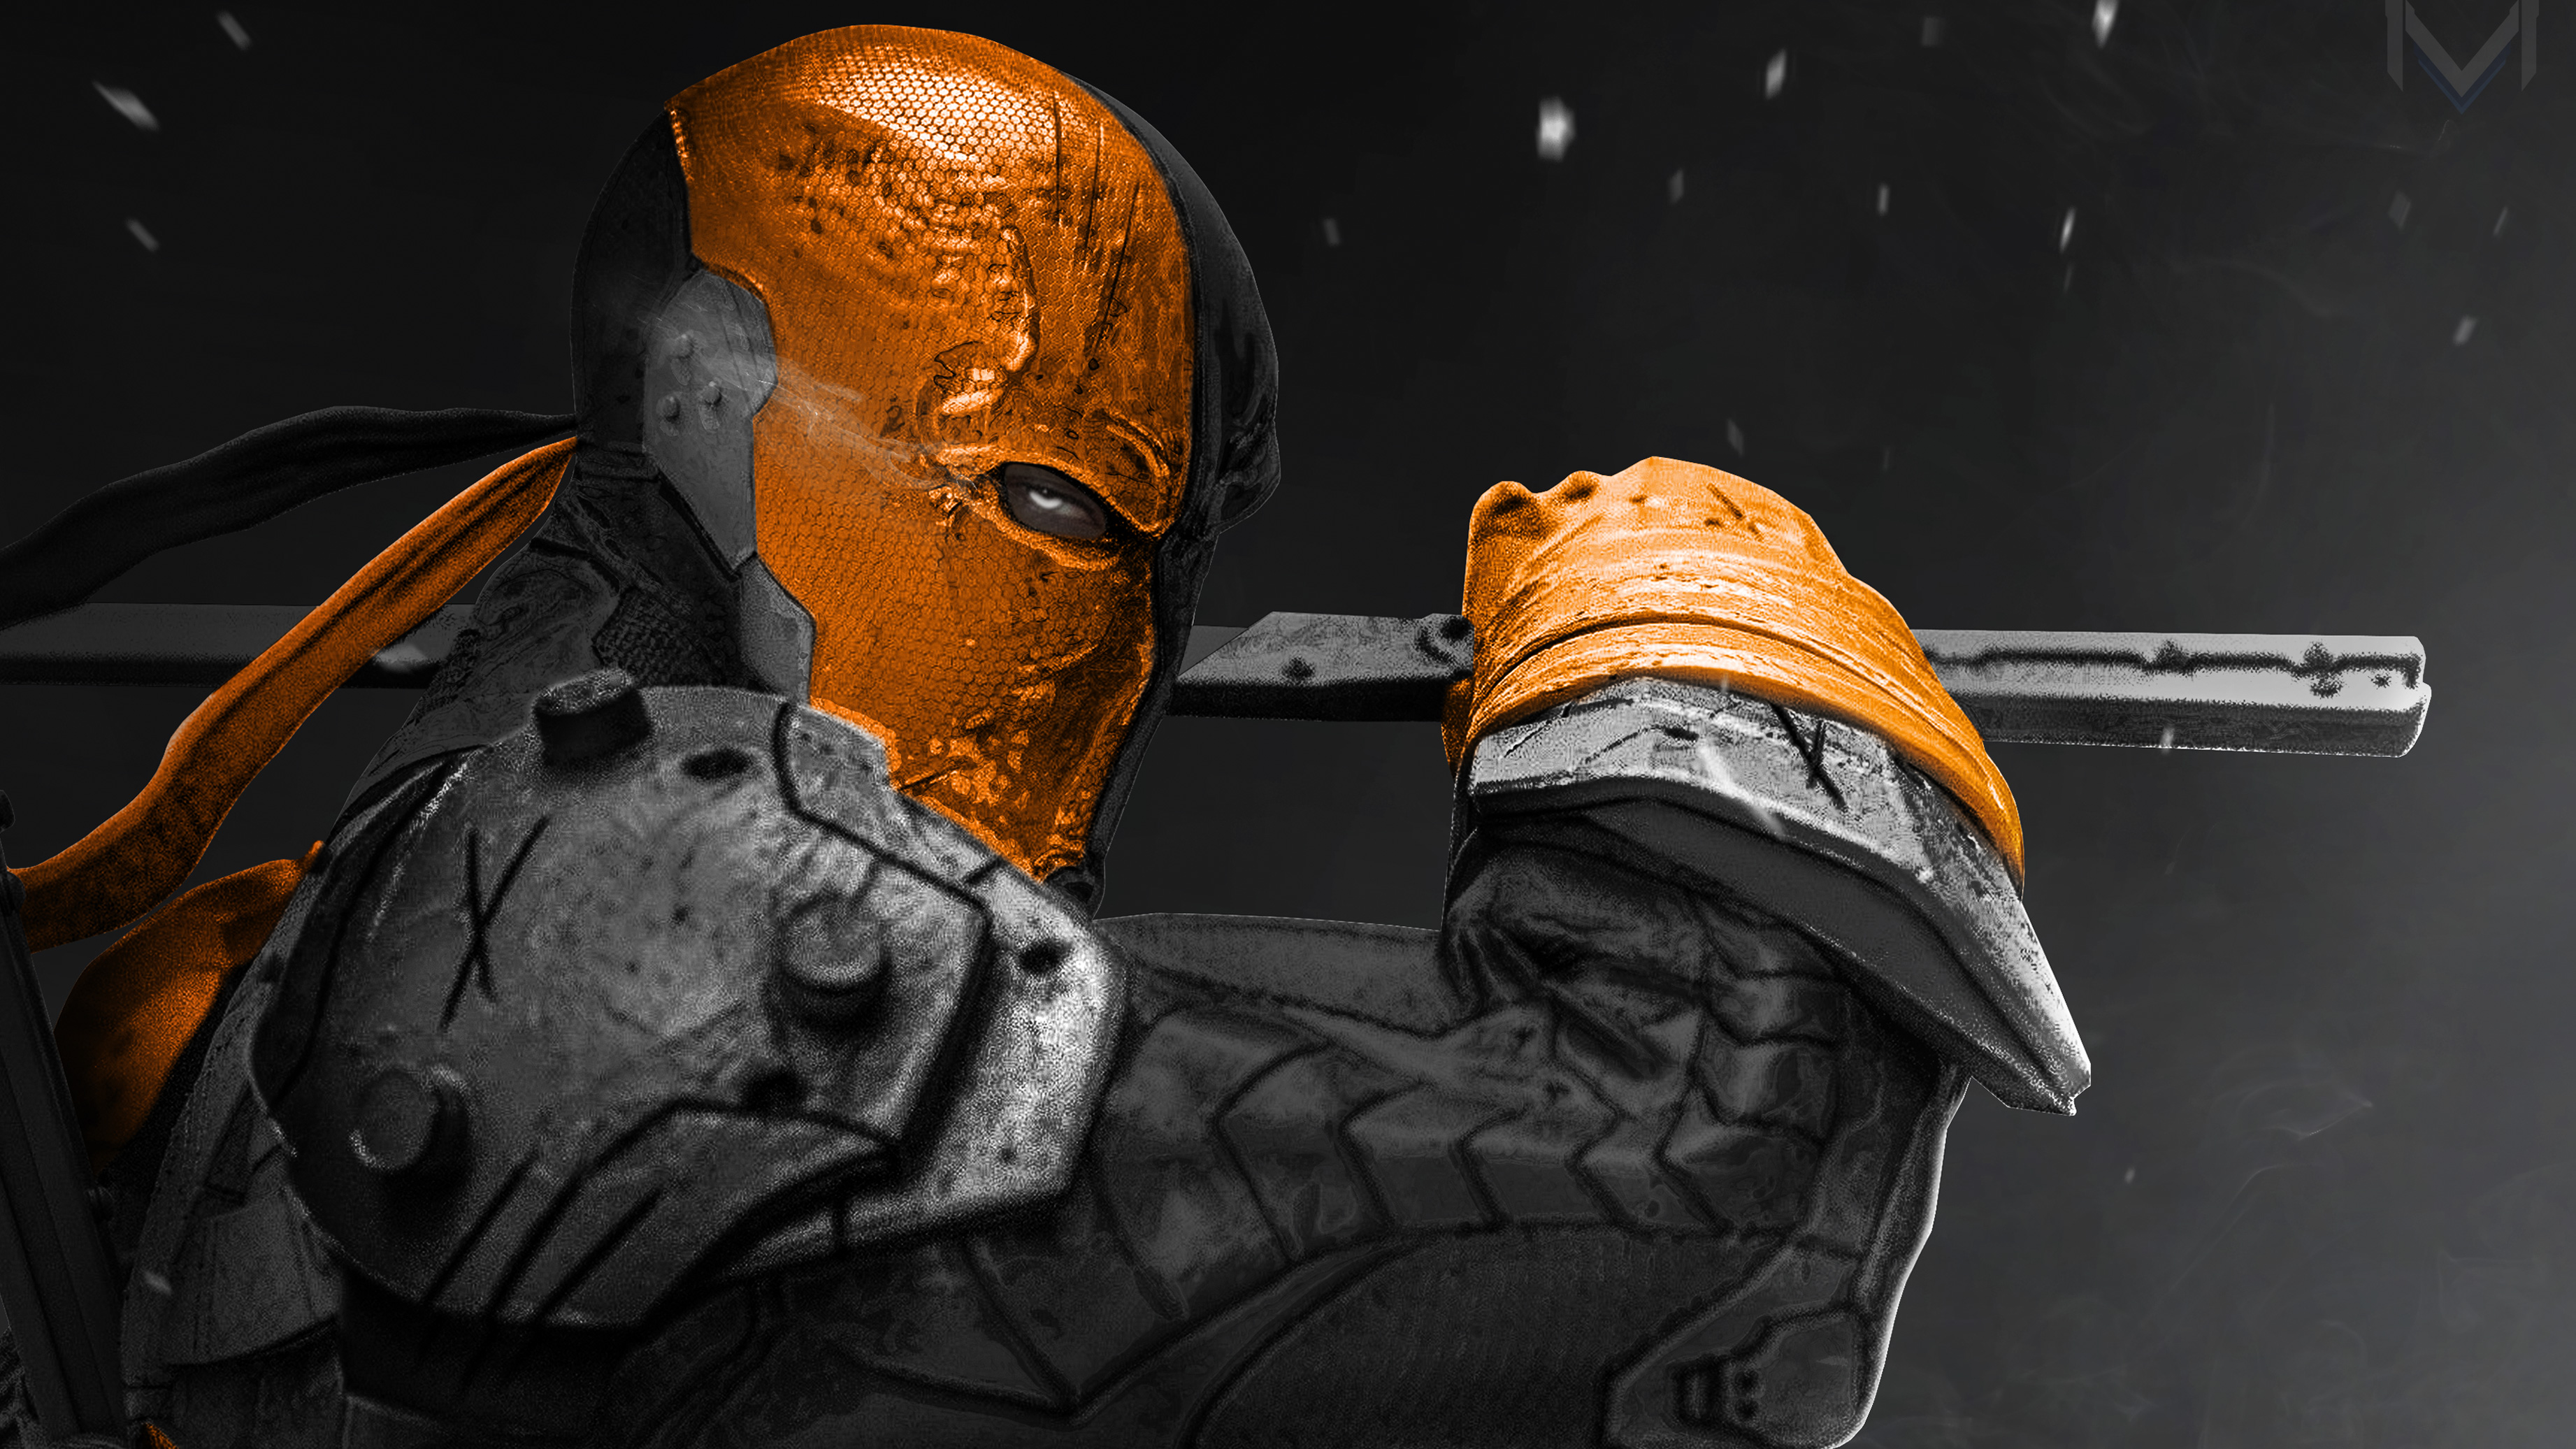 joe manganiello as deathstroke 4k 1548527314 - Joe Manganiello As Deathstroke 4k - joe manganiello wallpapers, hd-wallpapers, digital art wallpapers, deviantart wallpapers, deathstroke wallpapers, artwork wallpapers, artist wallpapers, 4k-wallpapers